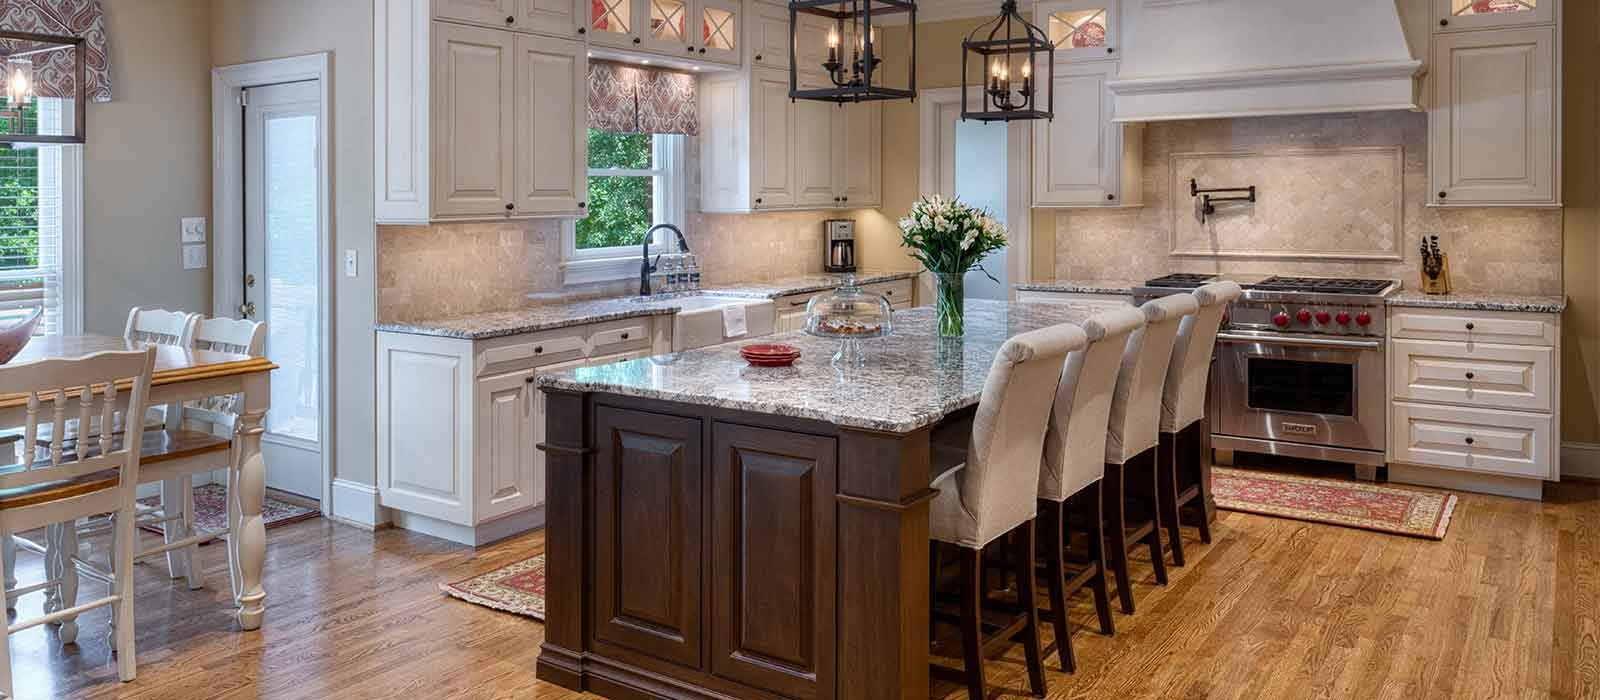 Capitol Design Award Winning Kitchen Bathroom Design In Austin TX - Austin remodeling companies